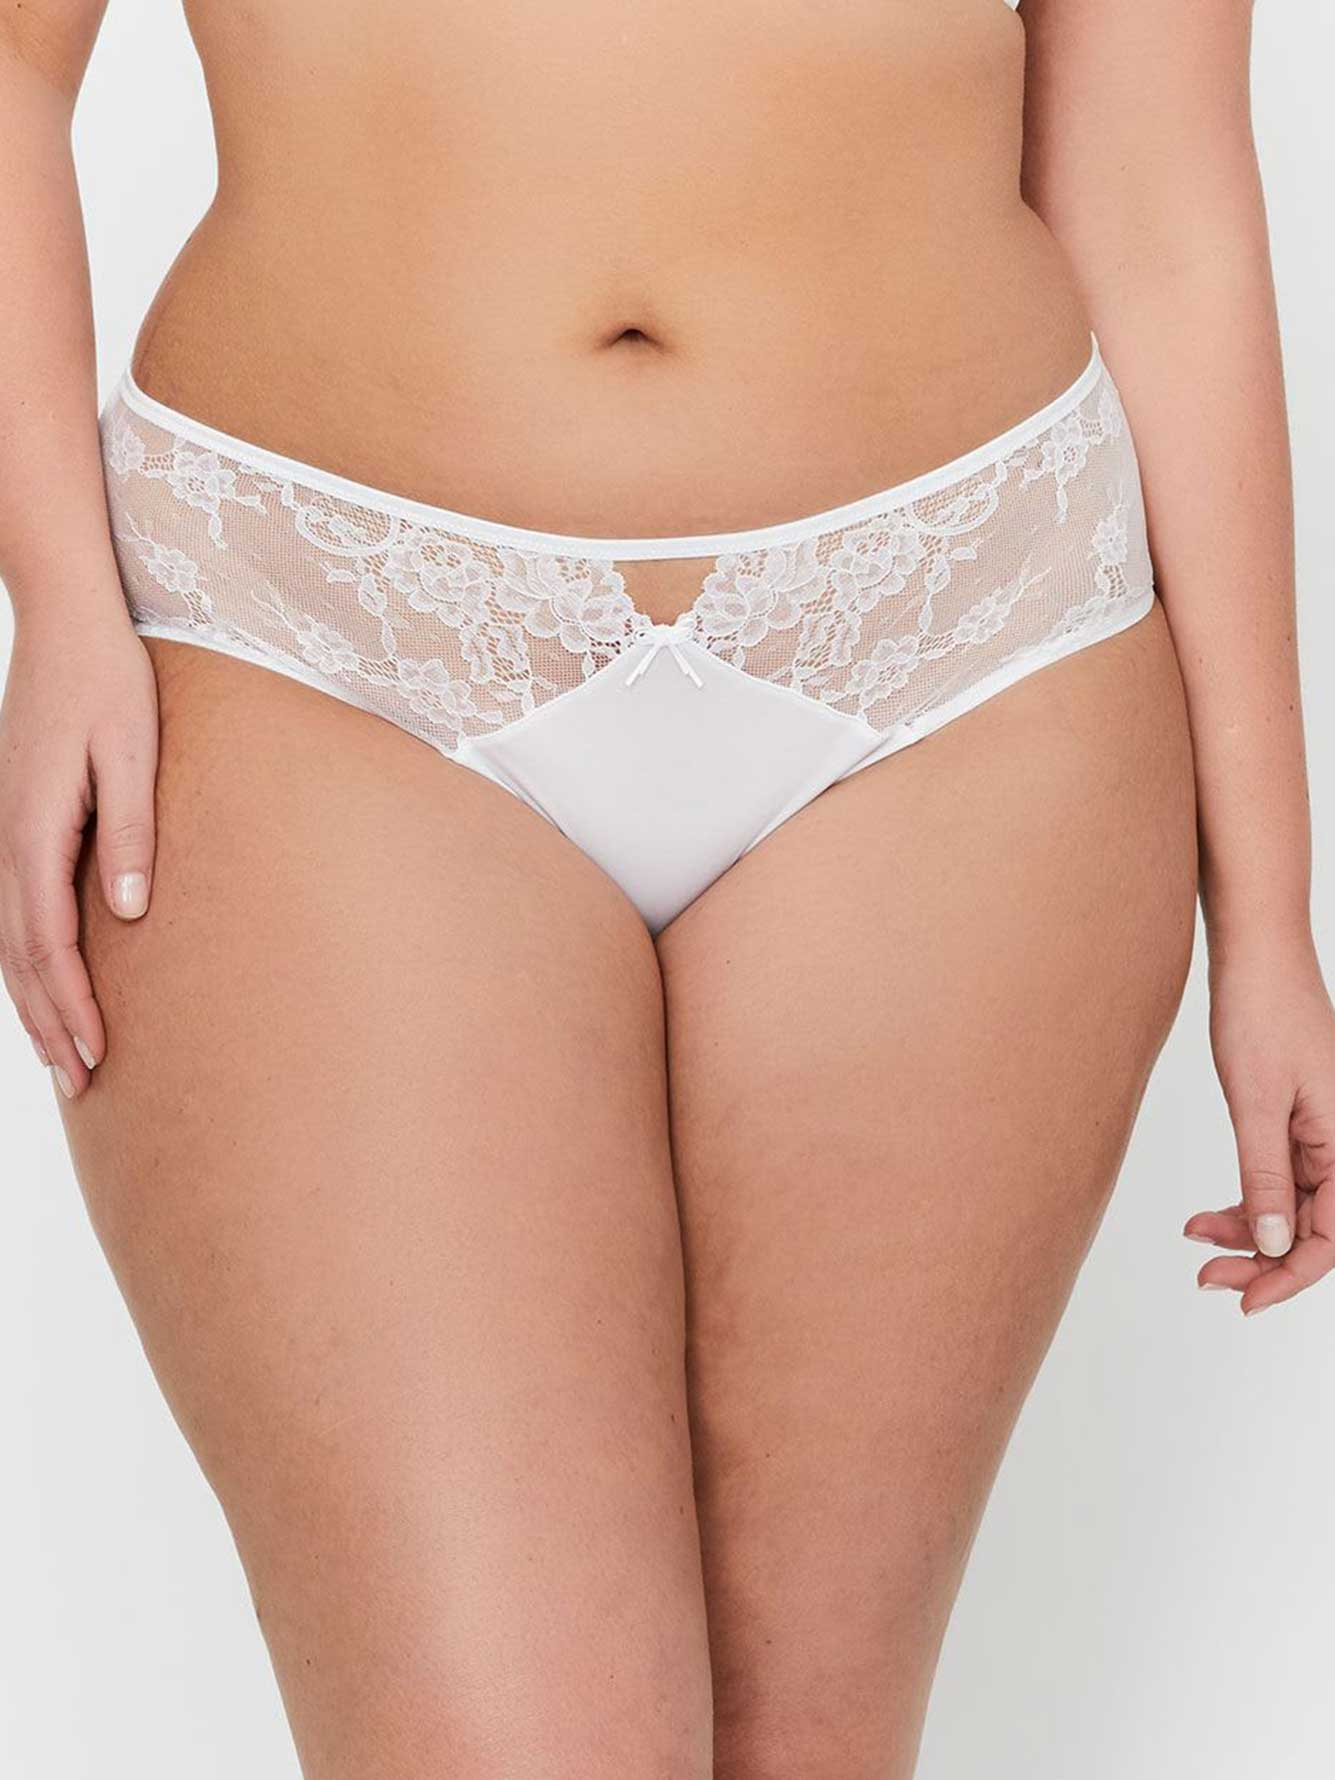 Ashley Graham High Cut Panty with Lace & Mesh